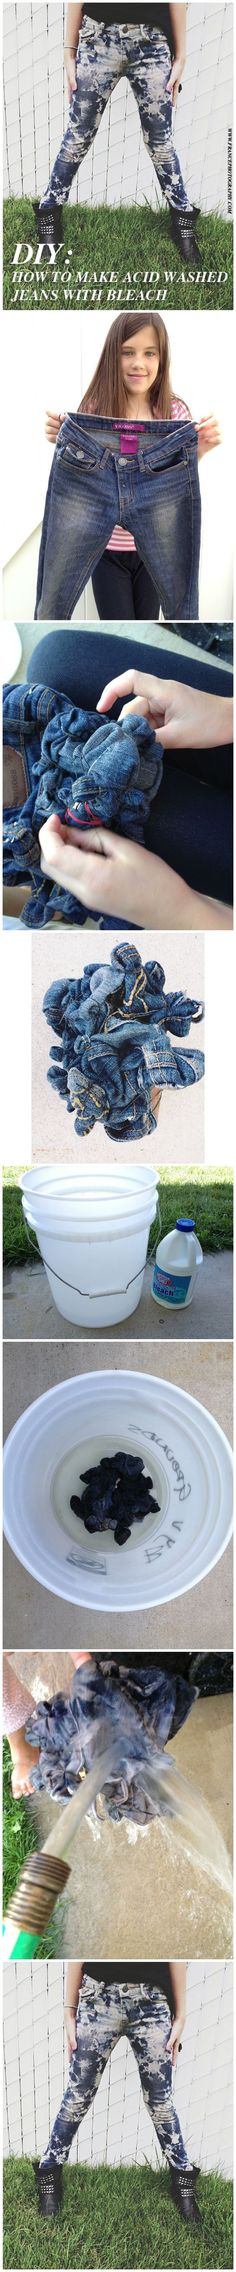 Chic Critique Forum | DIY - Make acid wash jeans in 5 simple steps